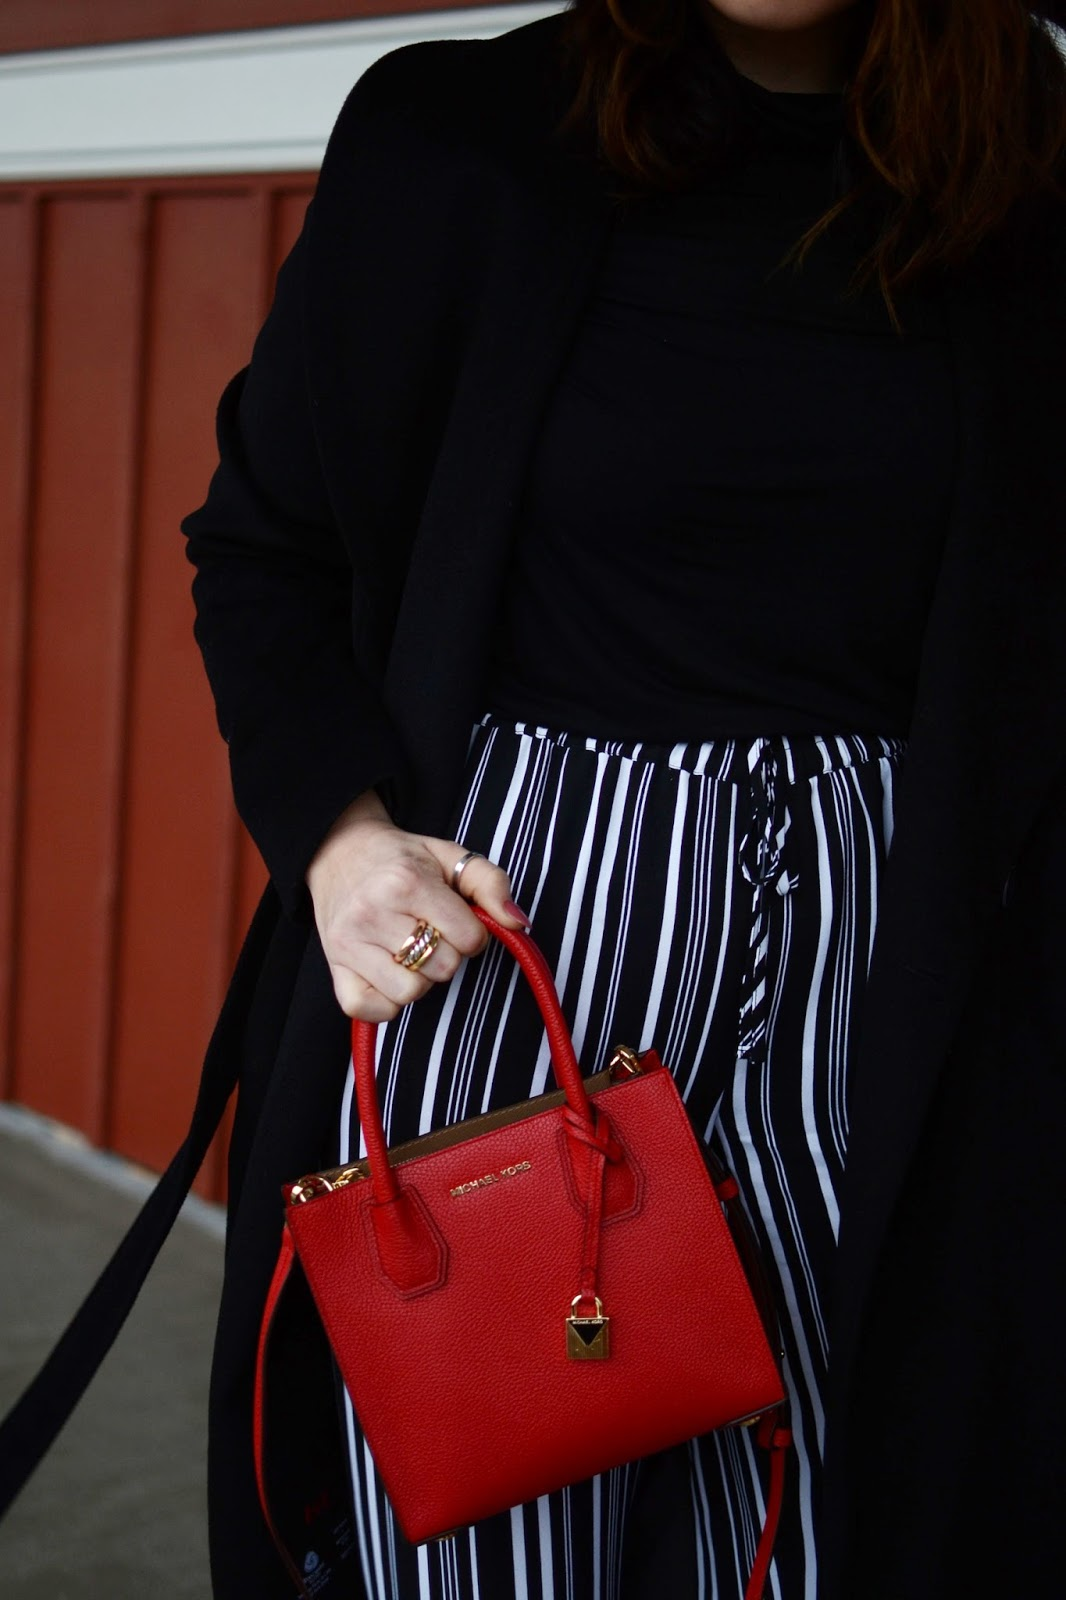 Michael Kors red mini bag vancouver fashion blogger